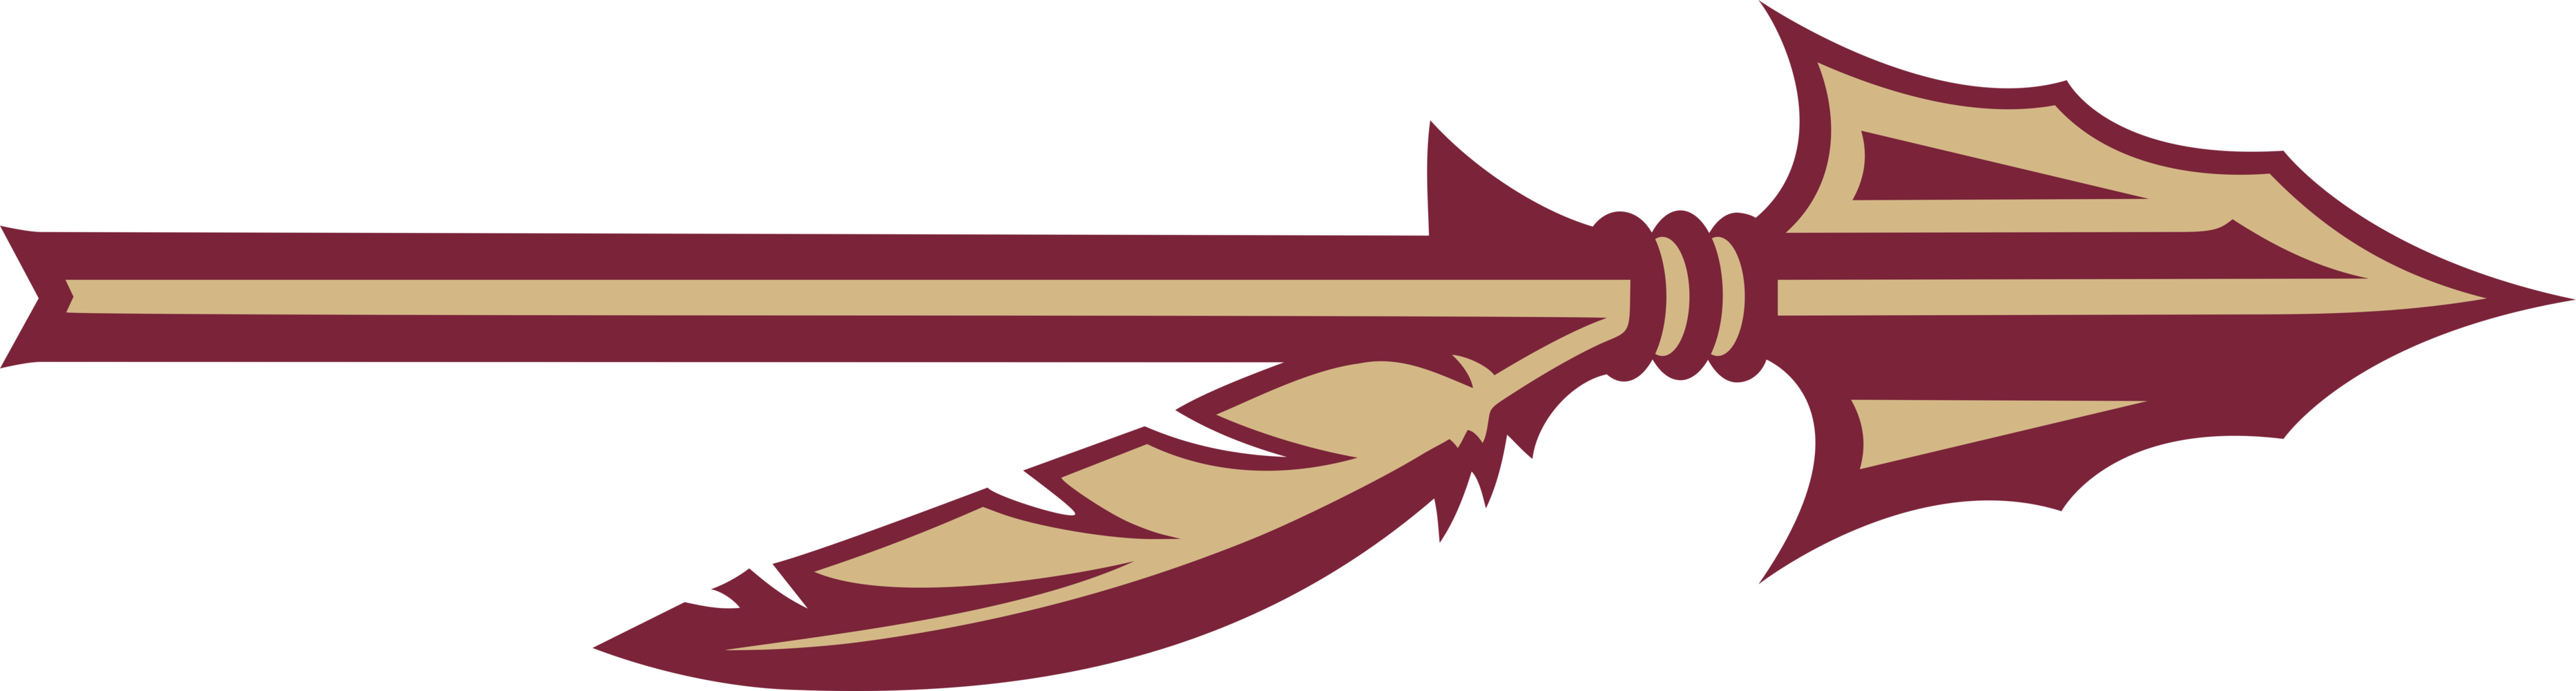 Florida state png. Seminoles team logos pinterest